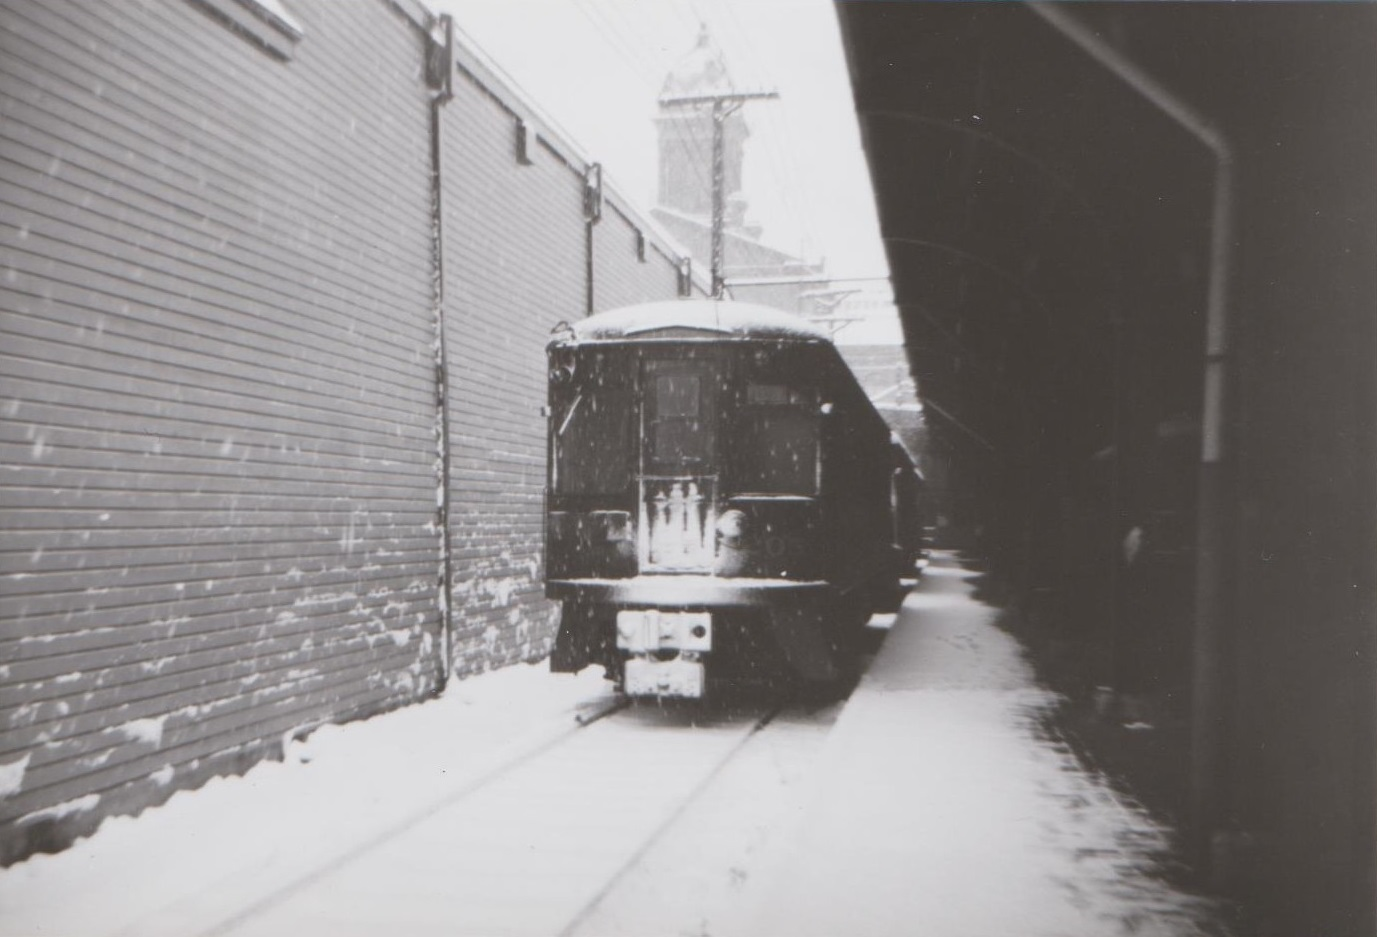 Baltimore & Annapolis Railroad Car #205 at Camden Station. First day of operations after strike. Baltimore, Maryland Date: December 19, 1948. Source: Hugh Hayes Collection.